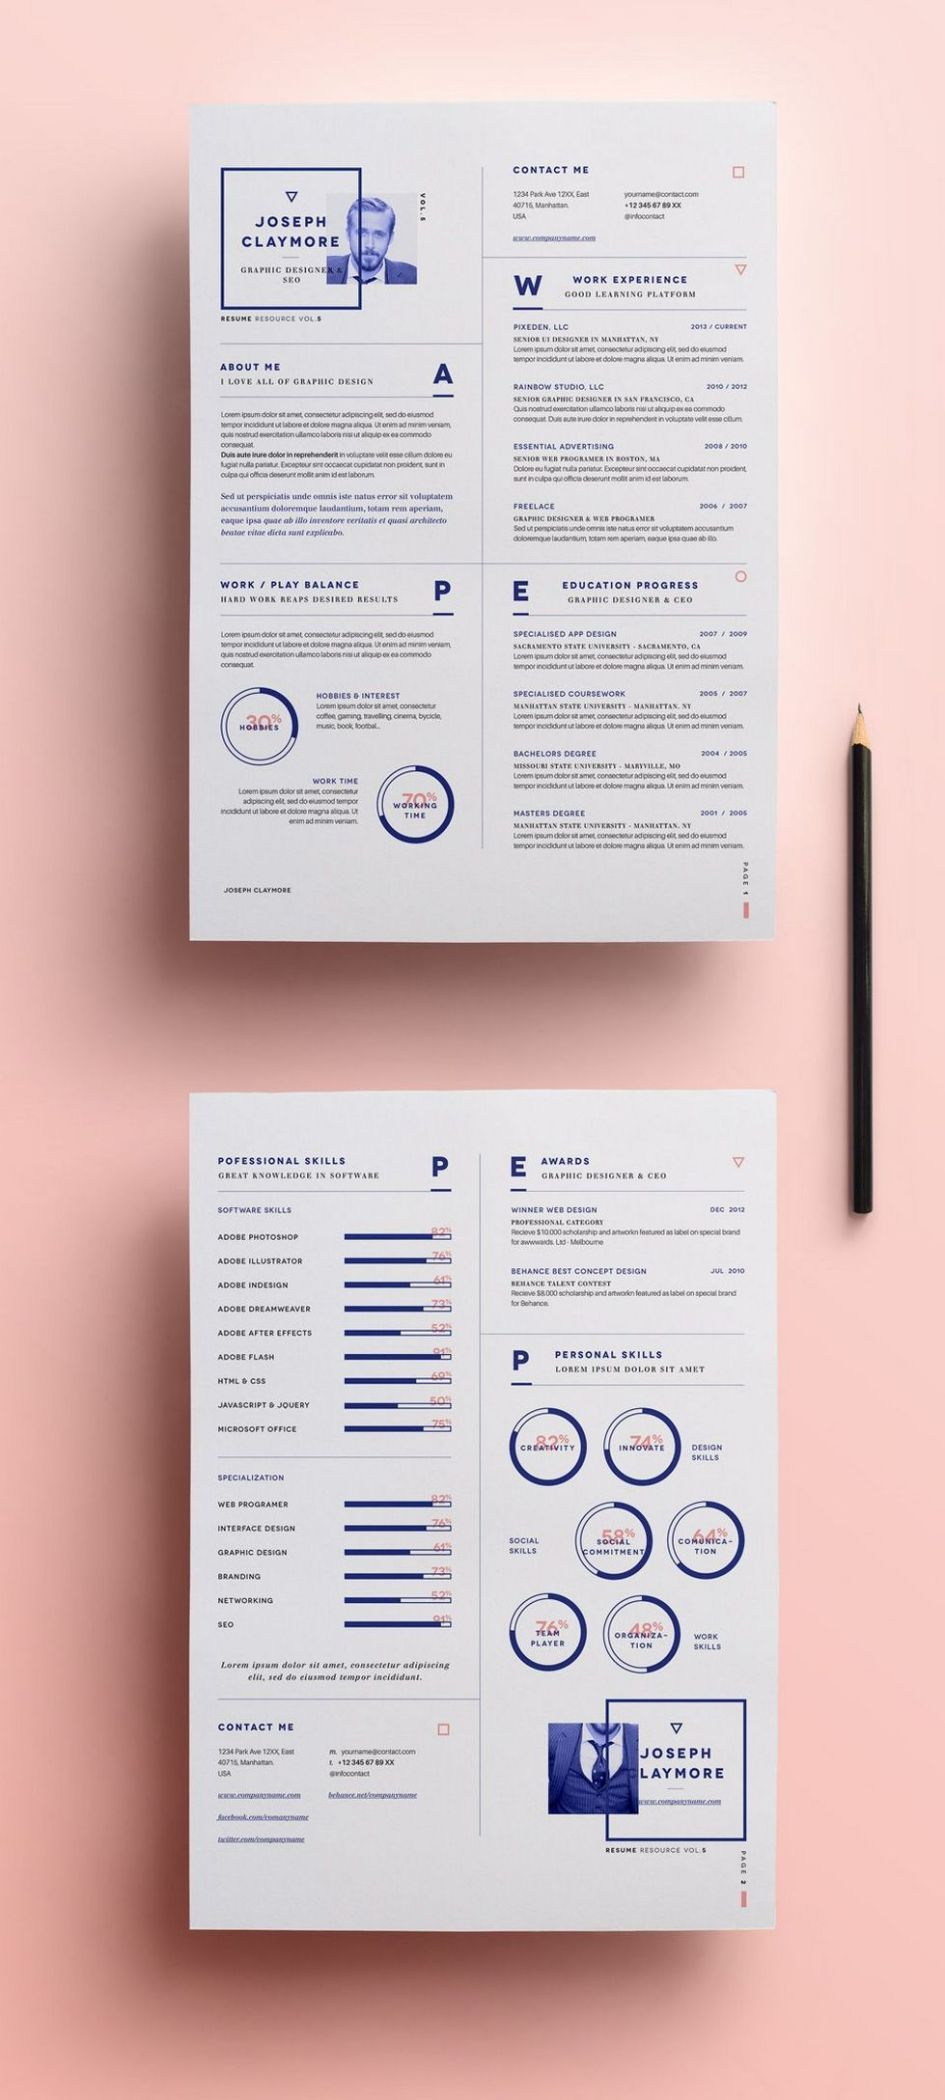 41 infographic resume ideas for examples Graphic design